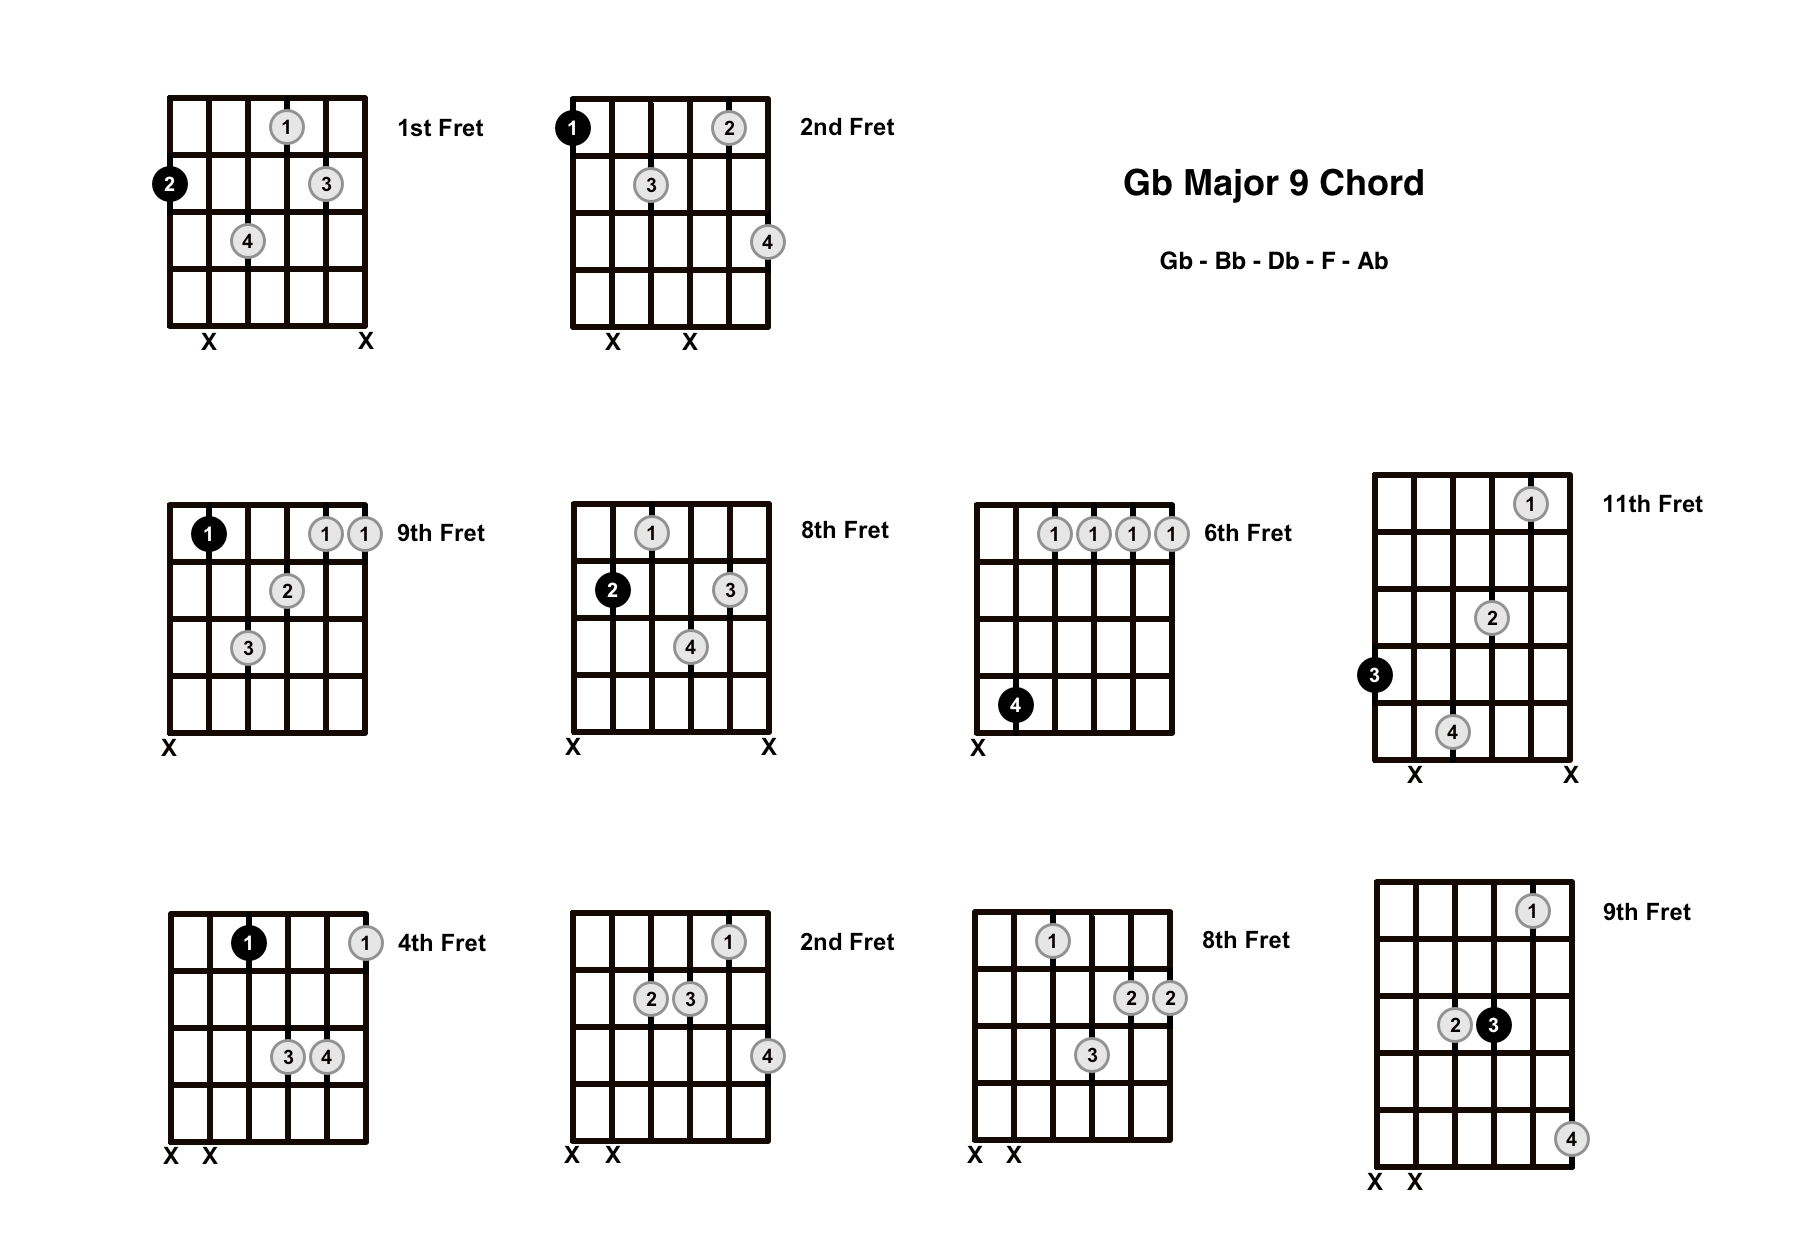 G Flat Major 9 Chord On The Guitar (Gb Maj 9) – Diagrams, Finger Positions and Theory